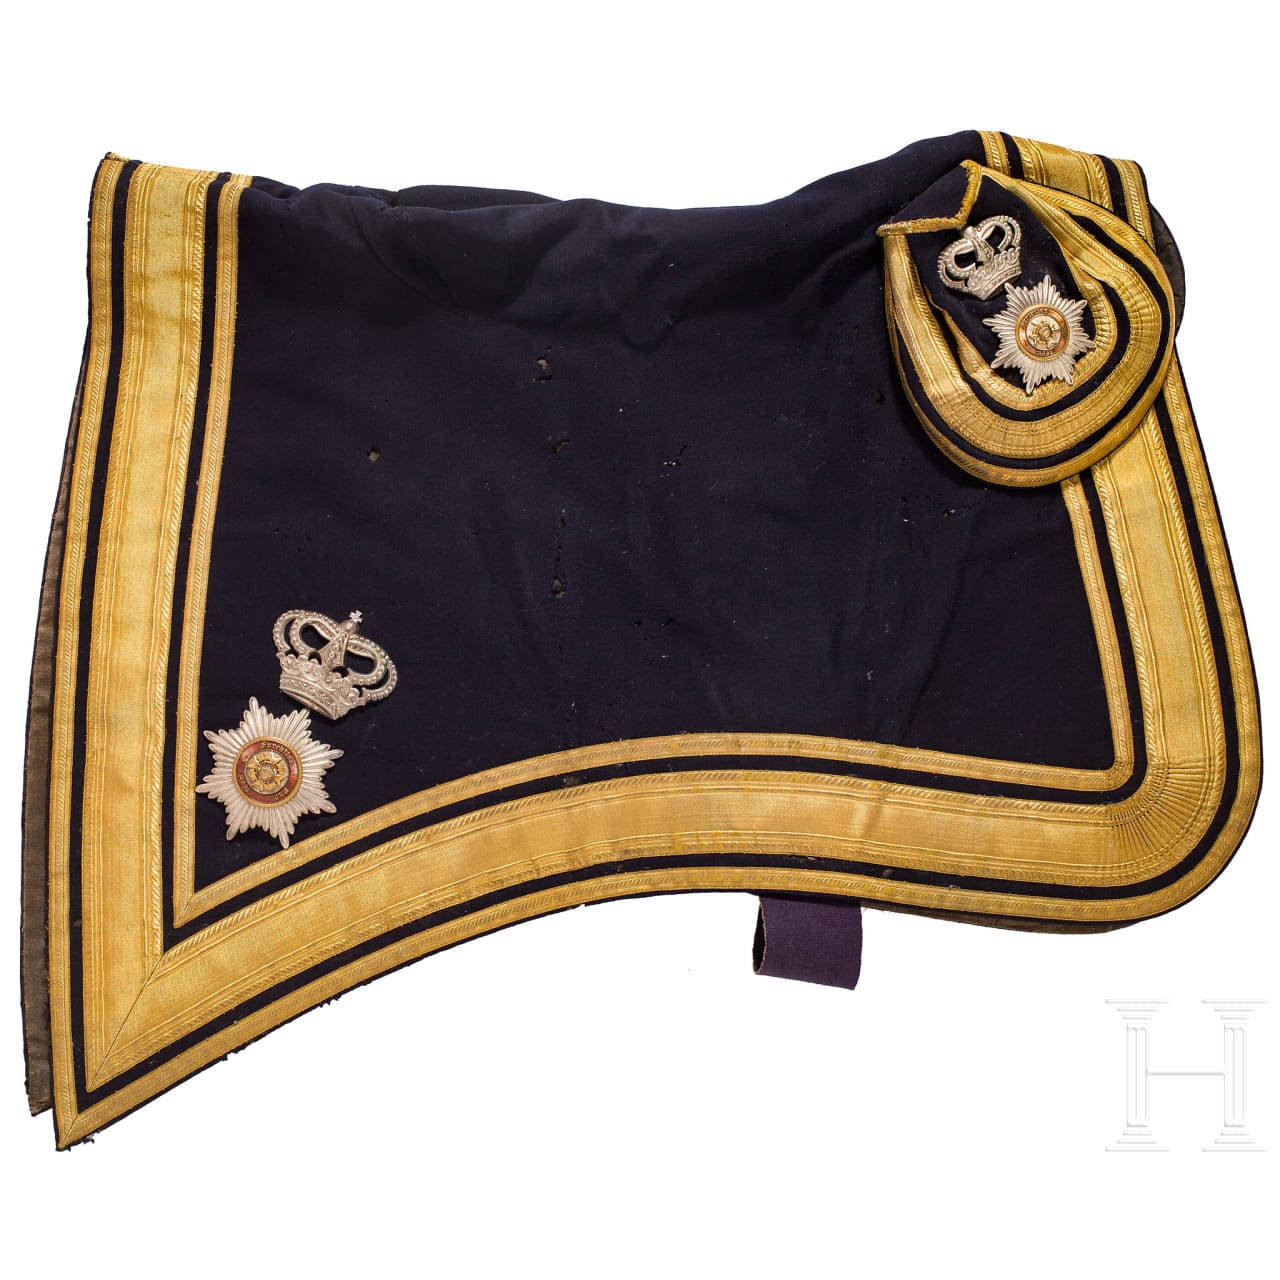 A saddle pad for a general, Germany, ca. 1900